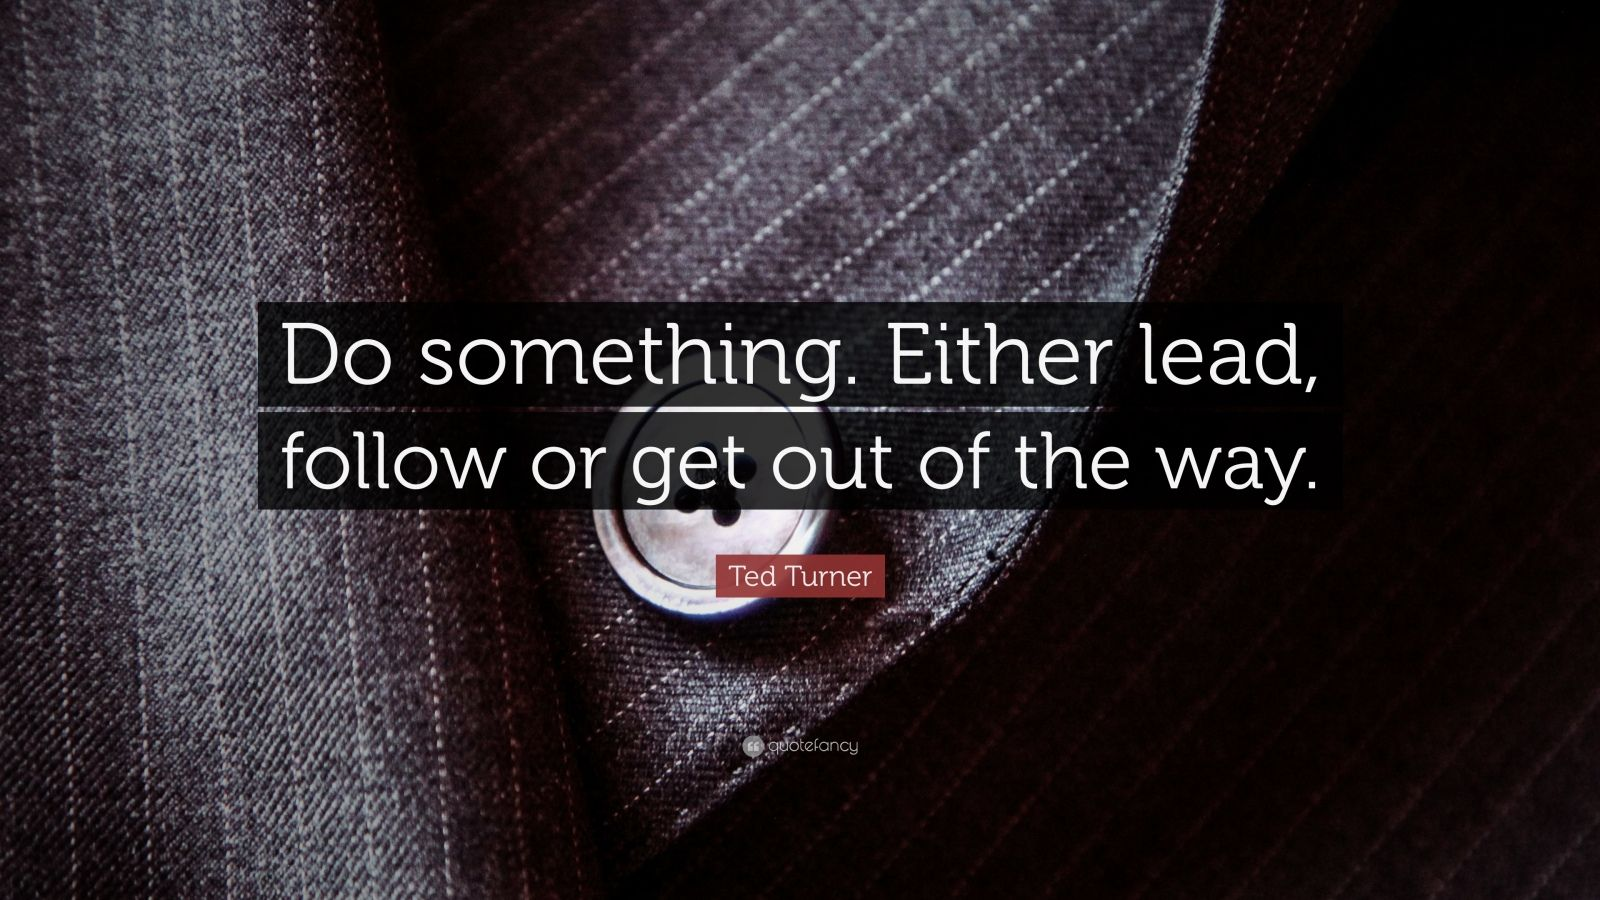 Lead Follow Or Get Out Of The Way Quote